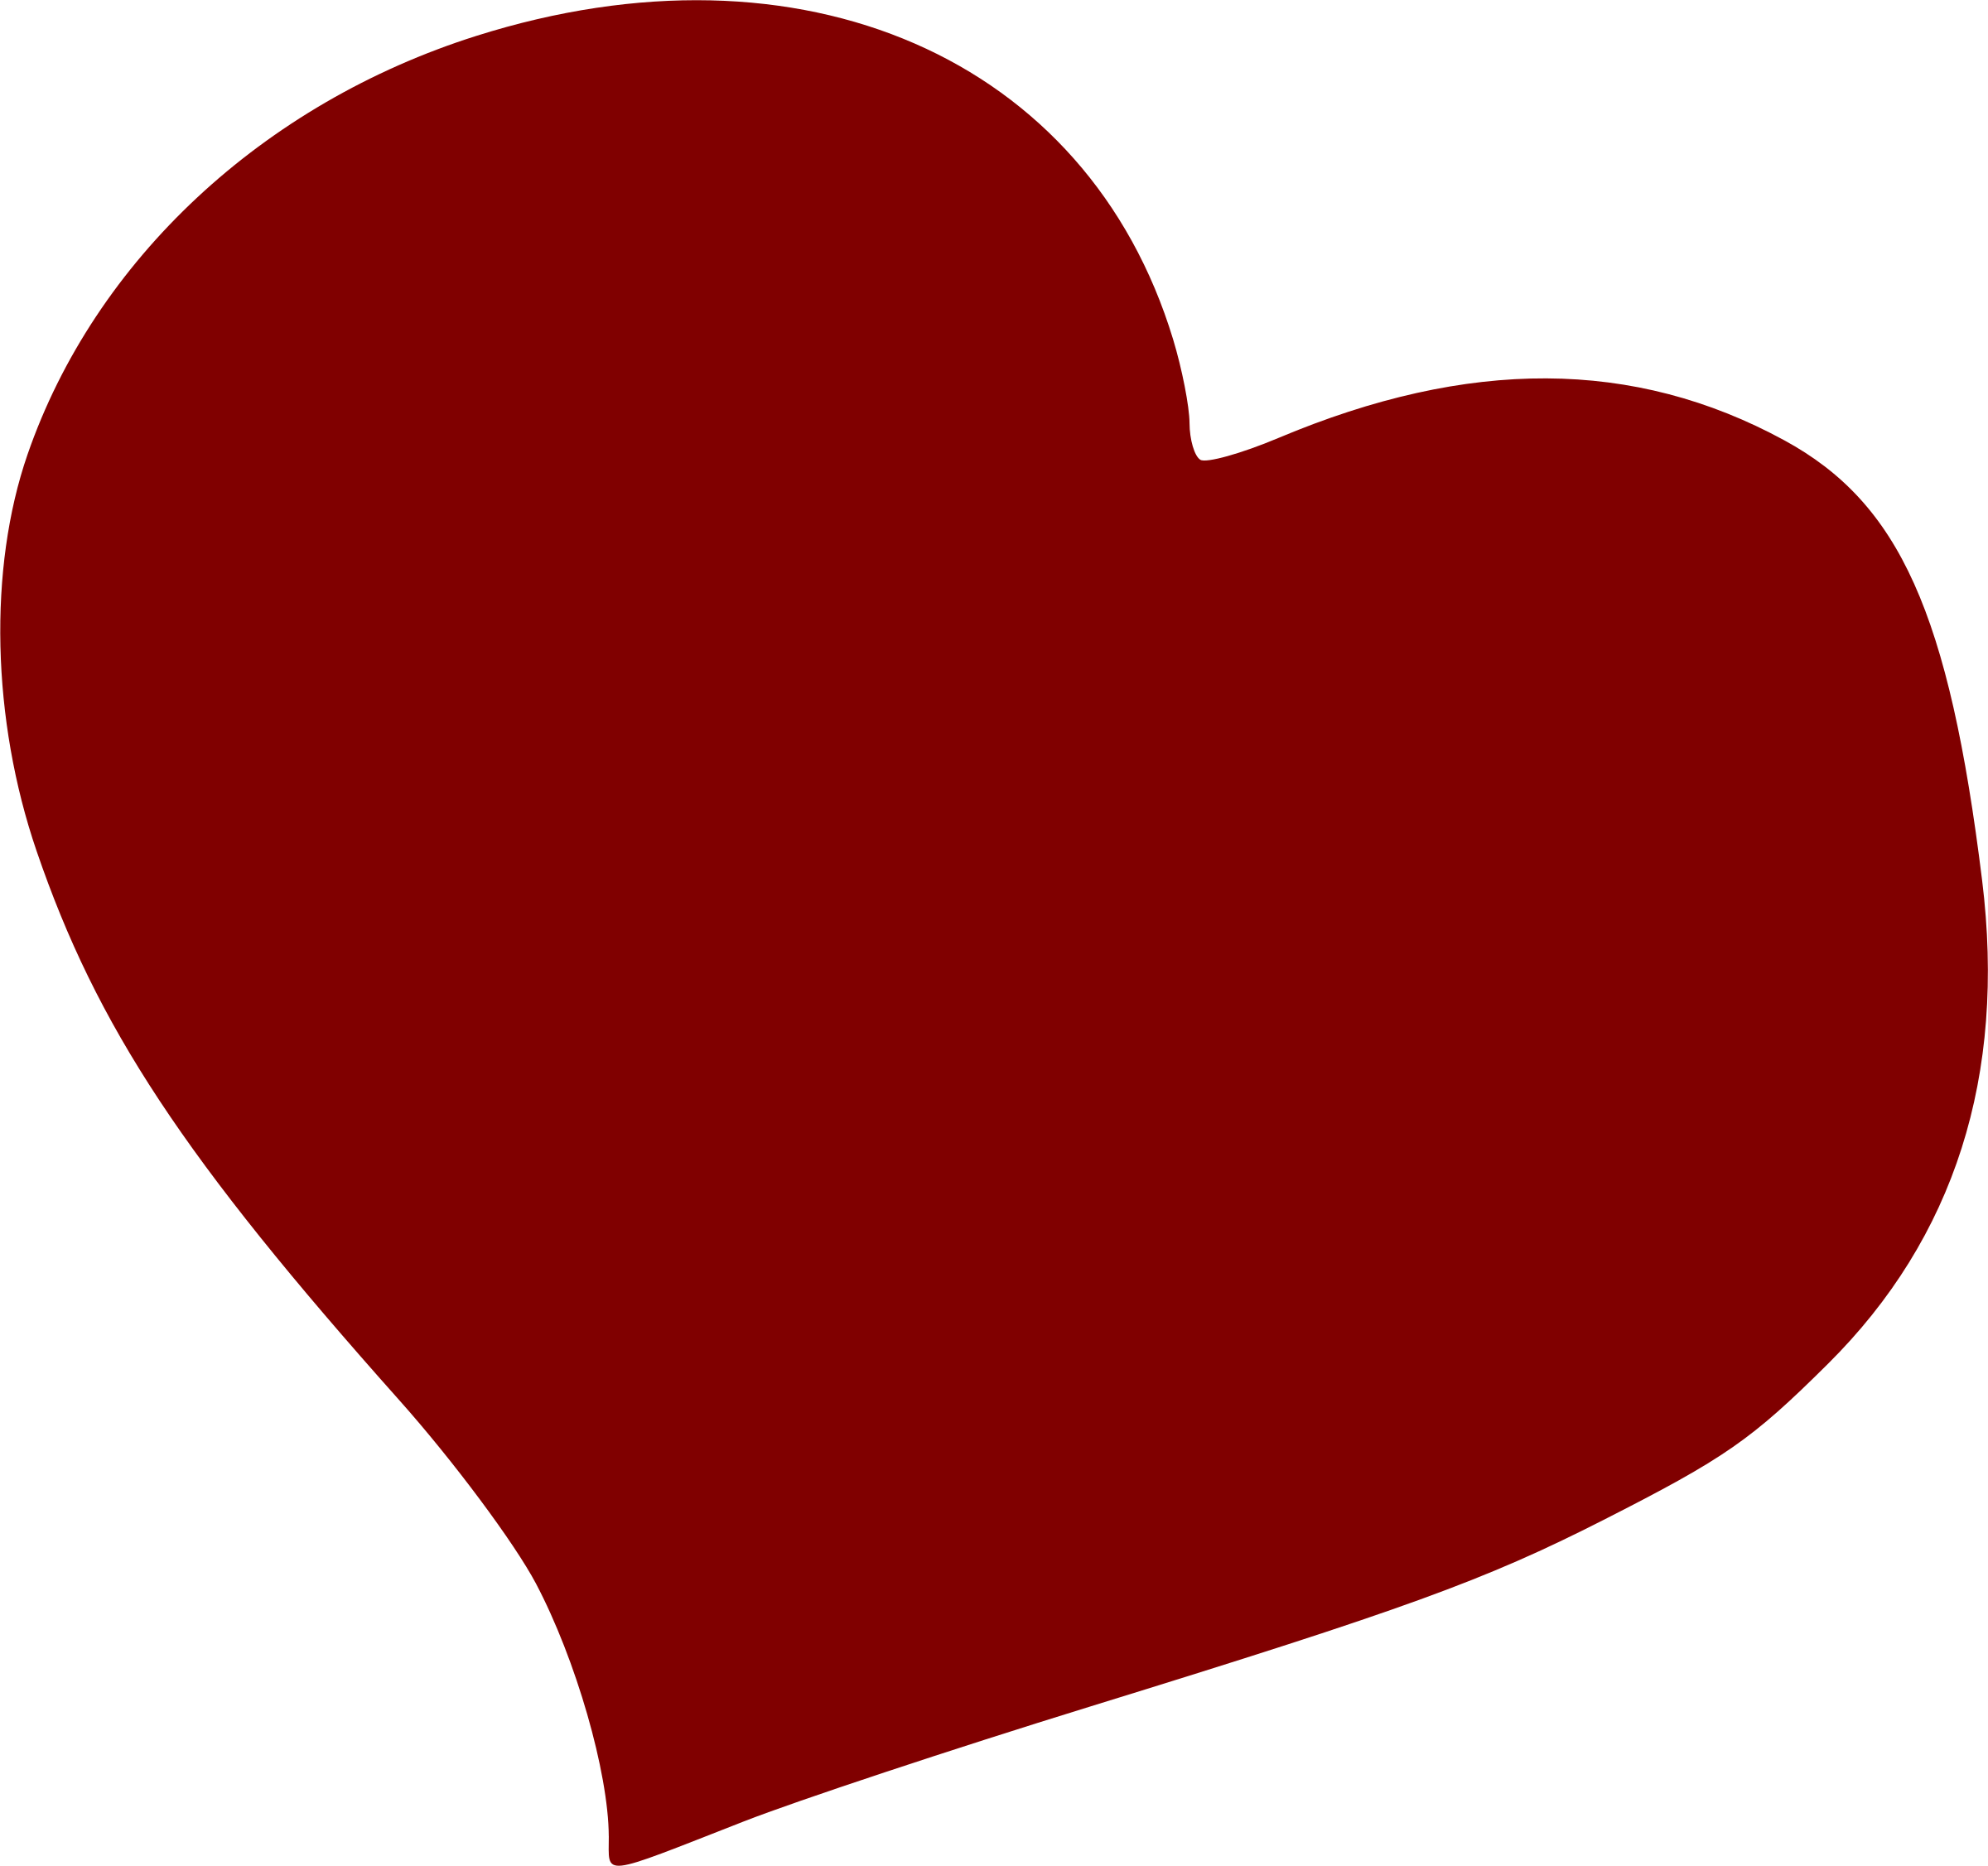 Clipart heart simple. Cutie pop couldn t